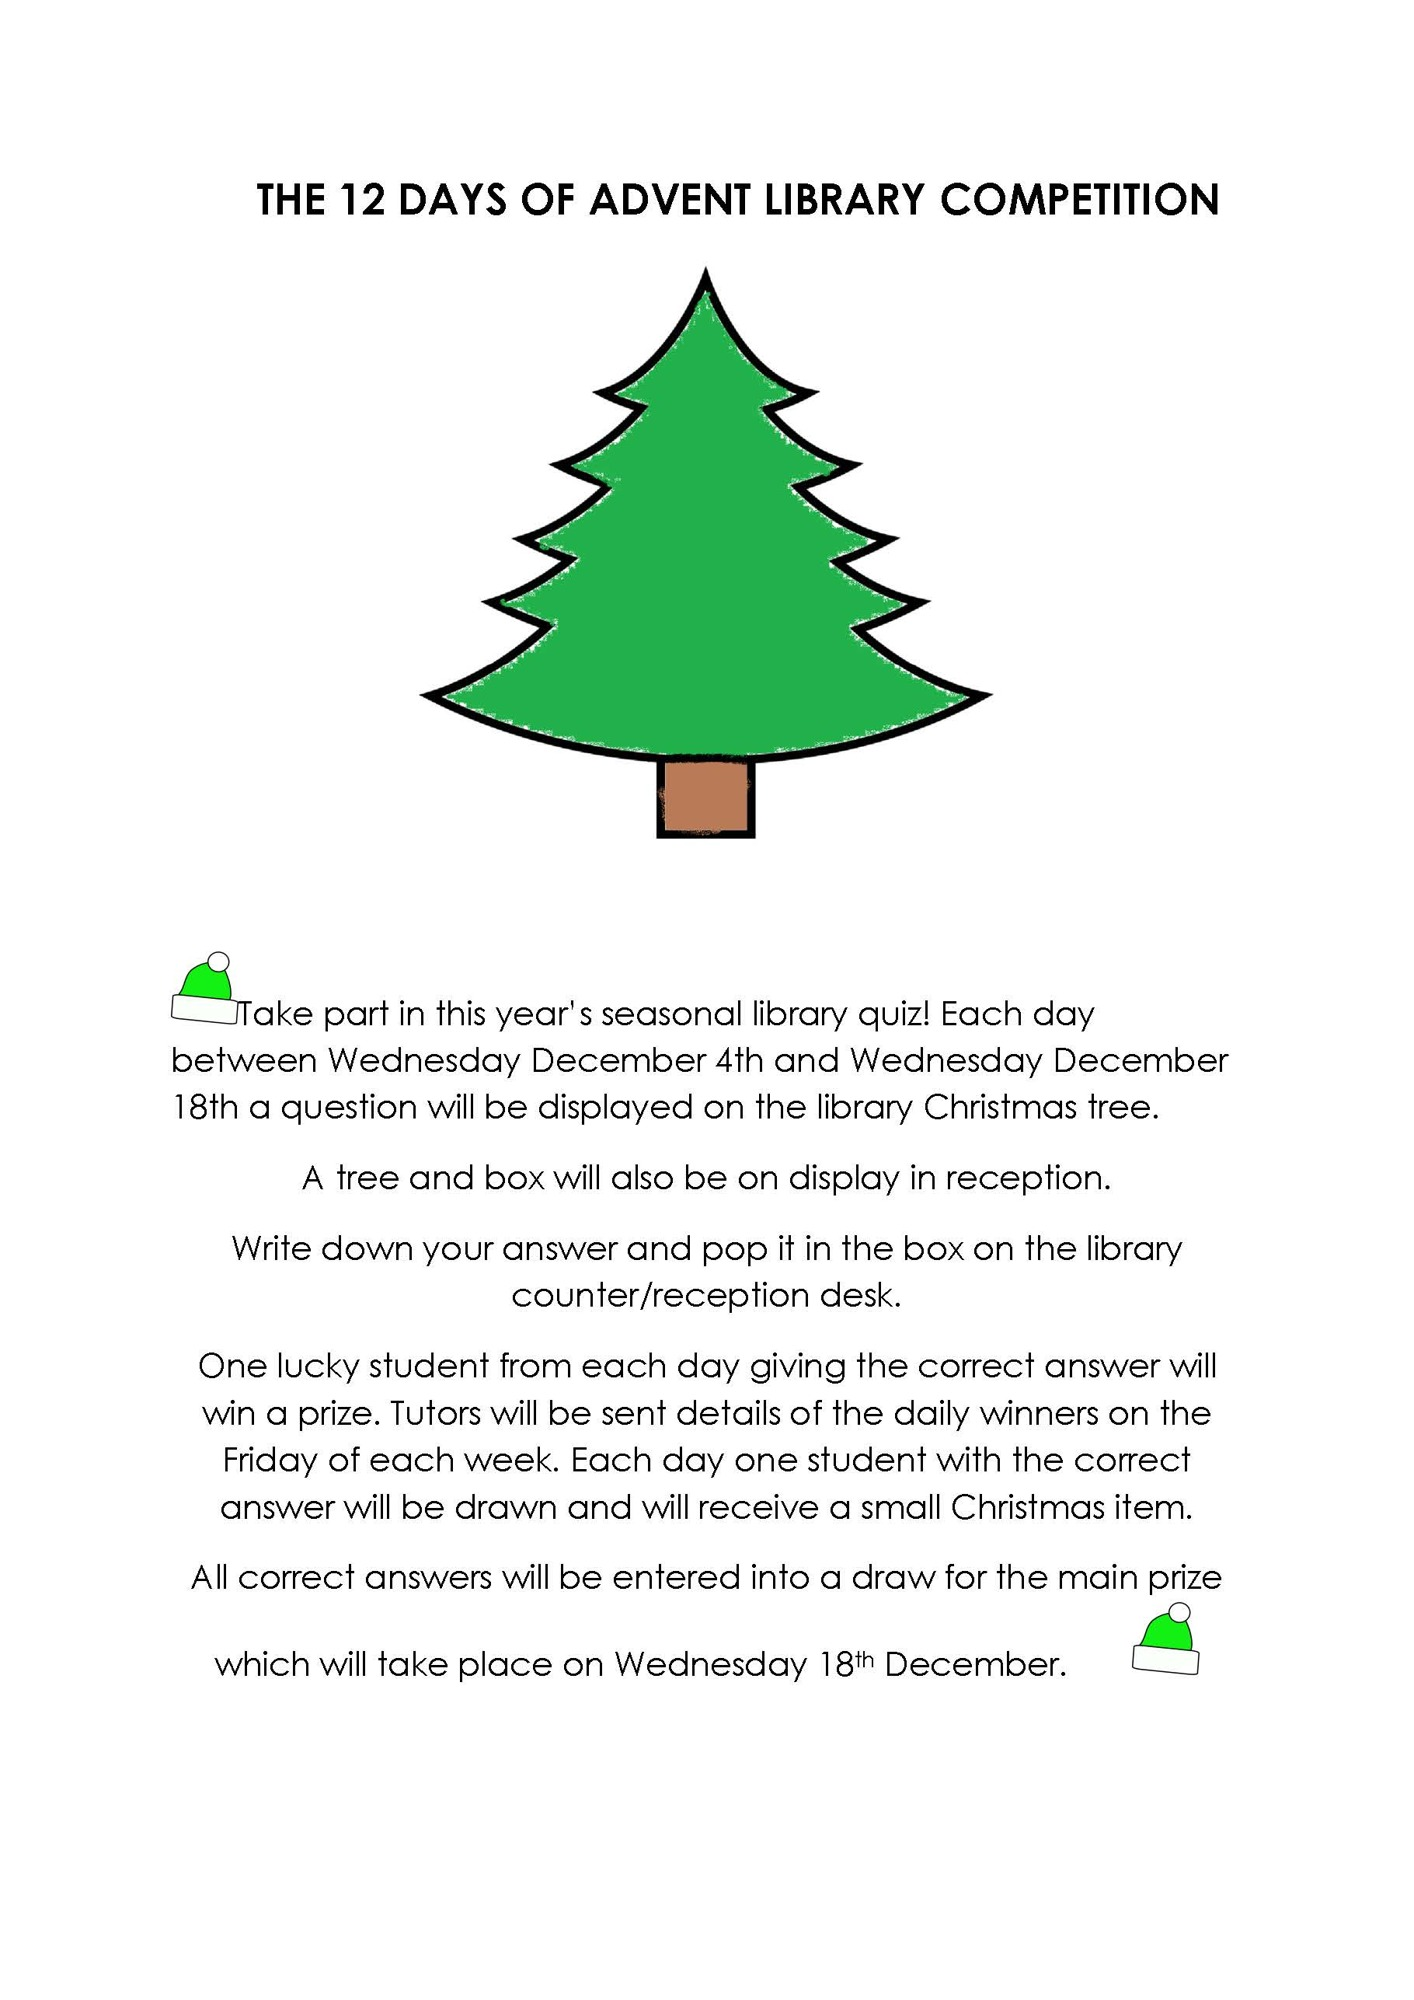 THE 12 DAYS OF LIBRARY ADVENT